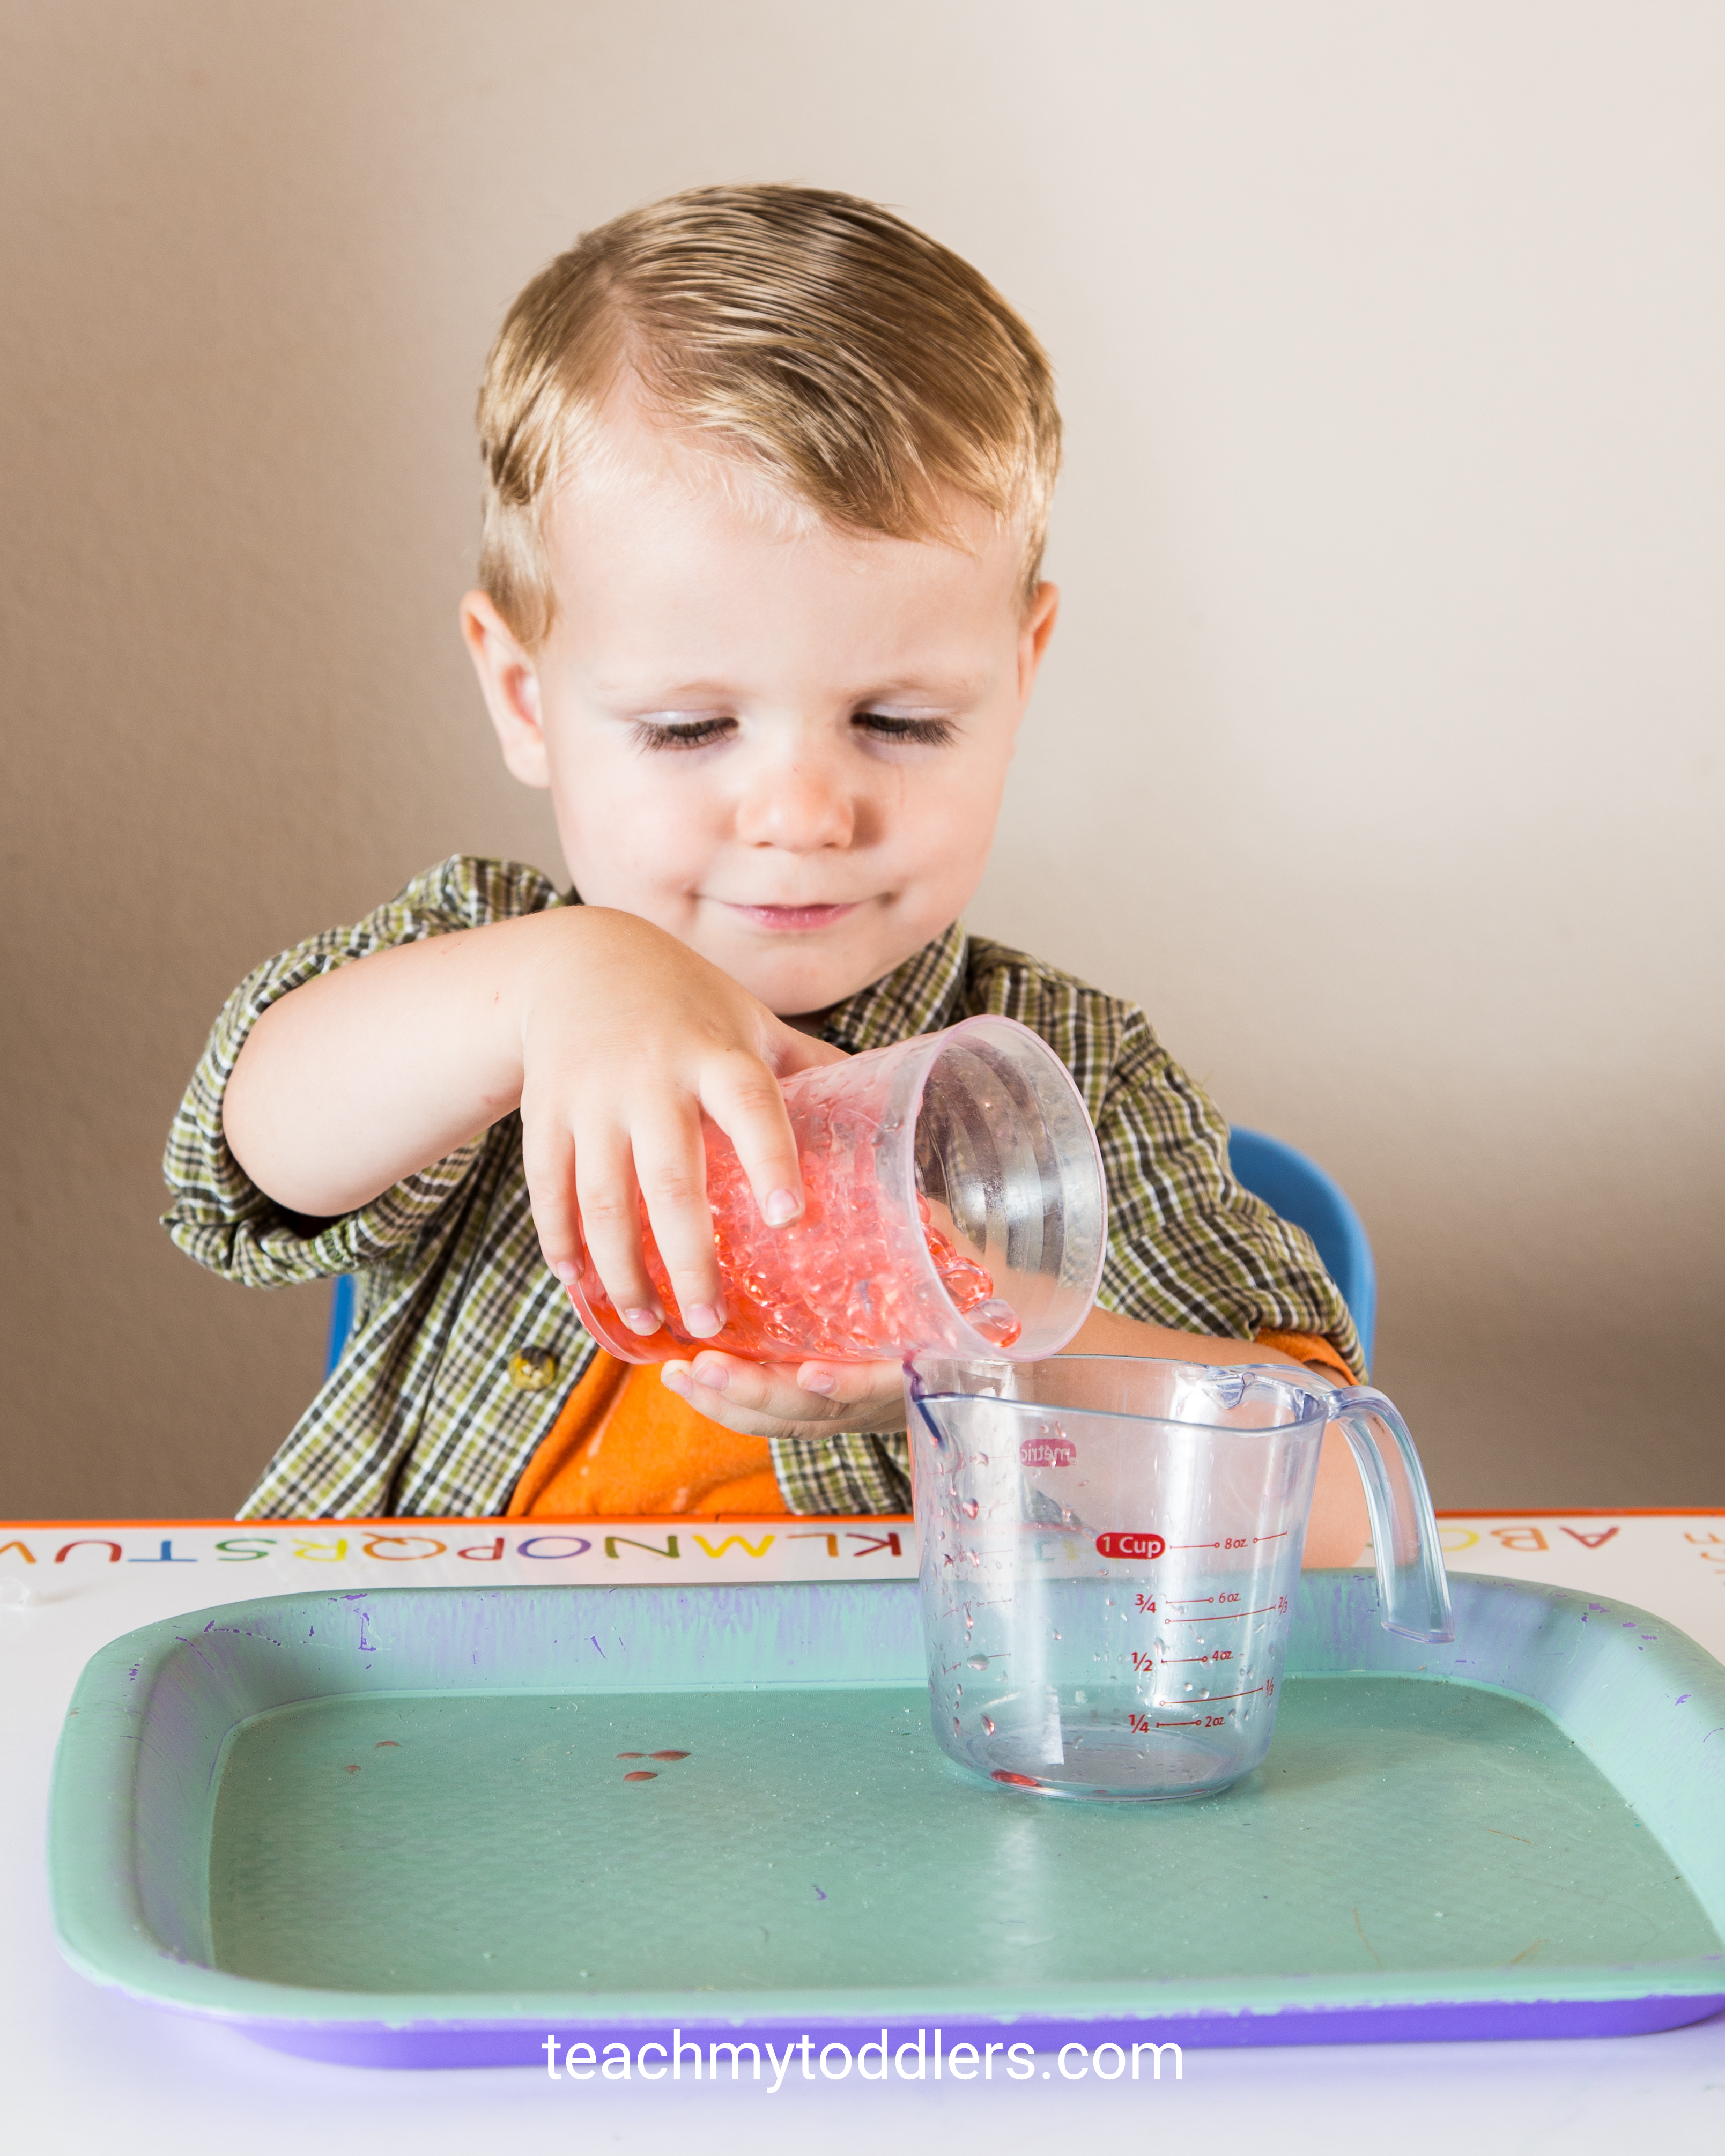 Teach your toddlers the color red with these tot tray ideas